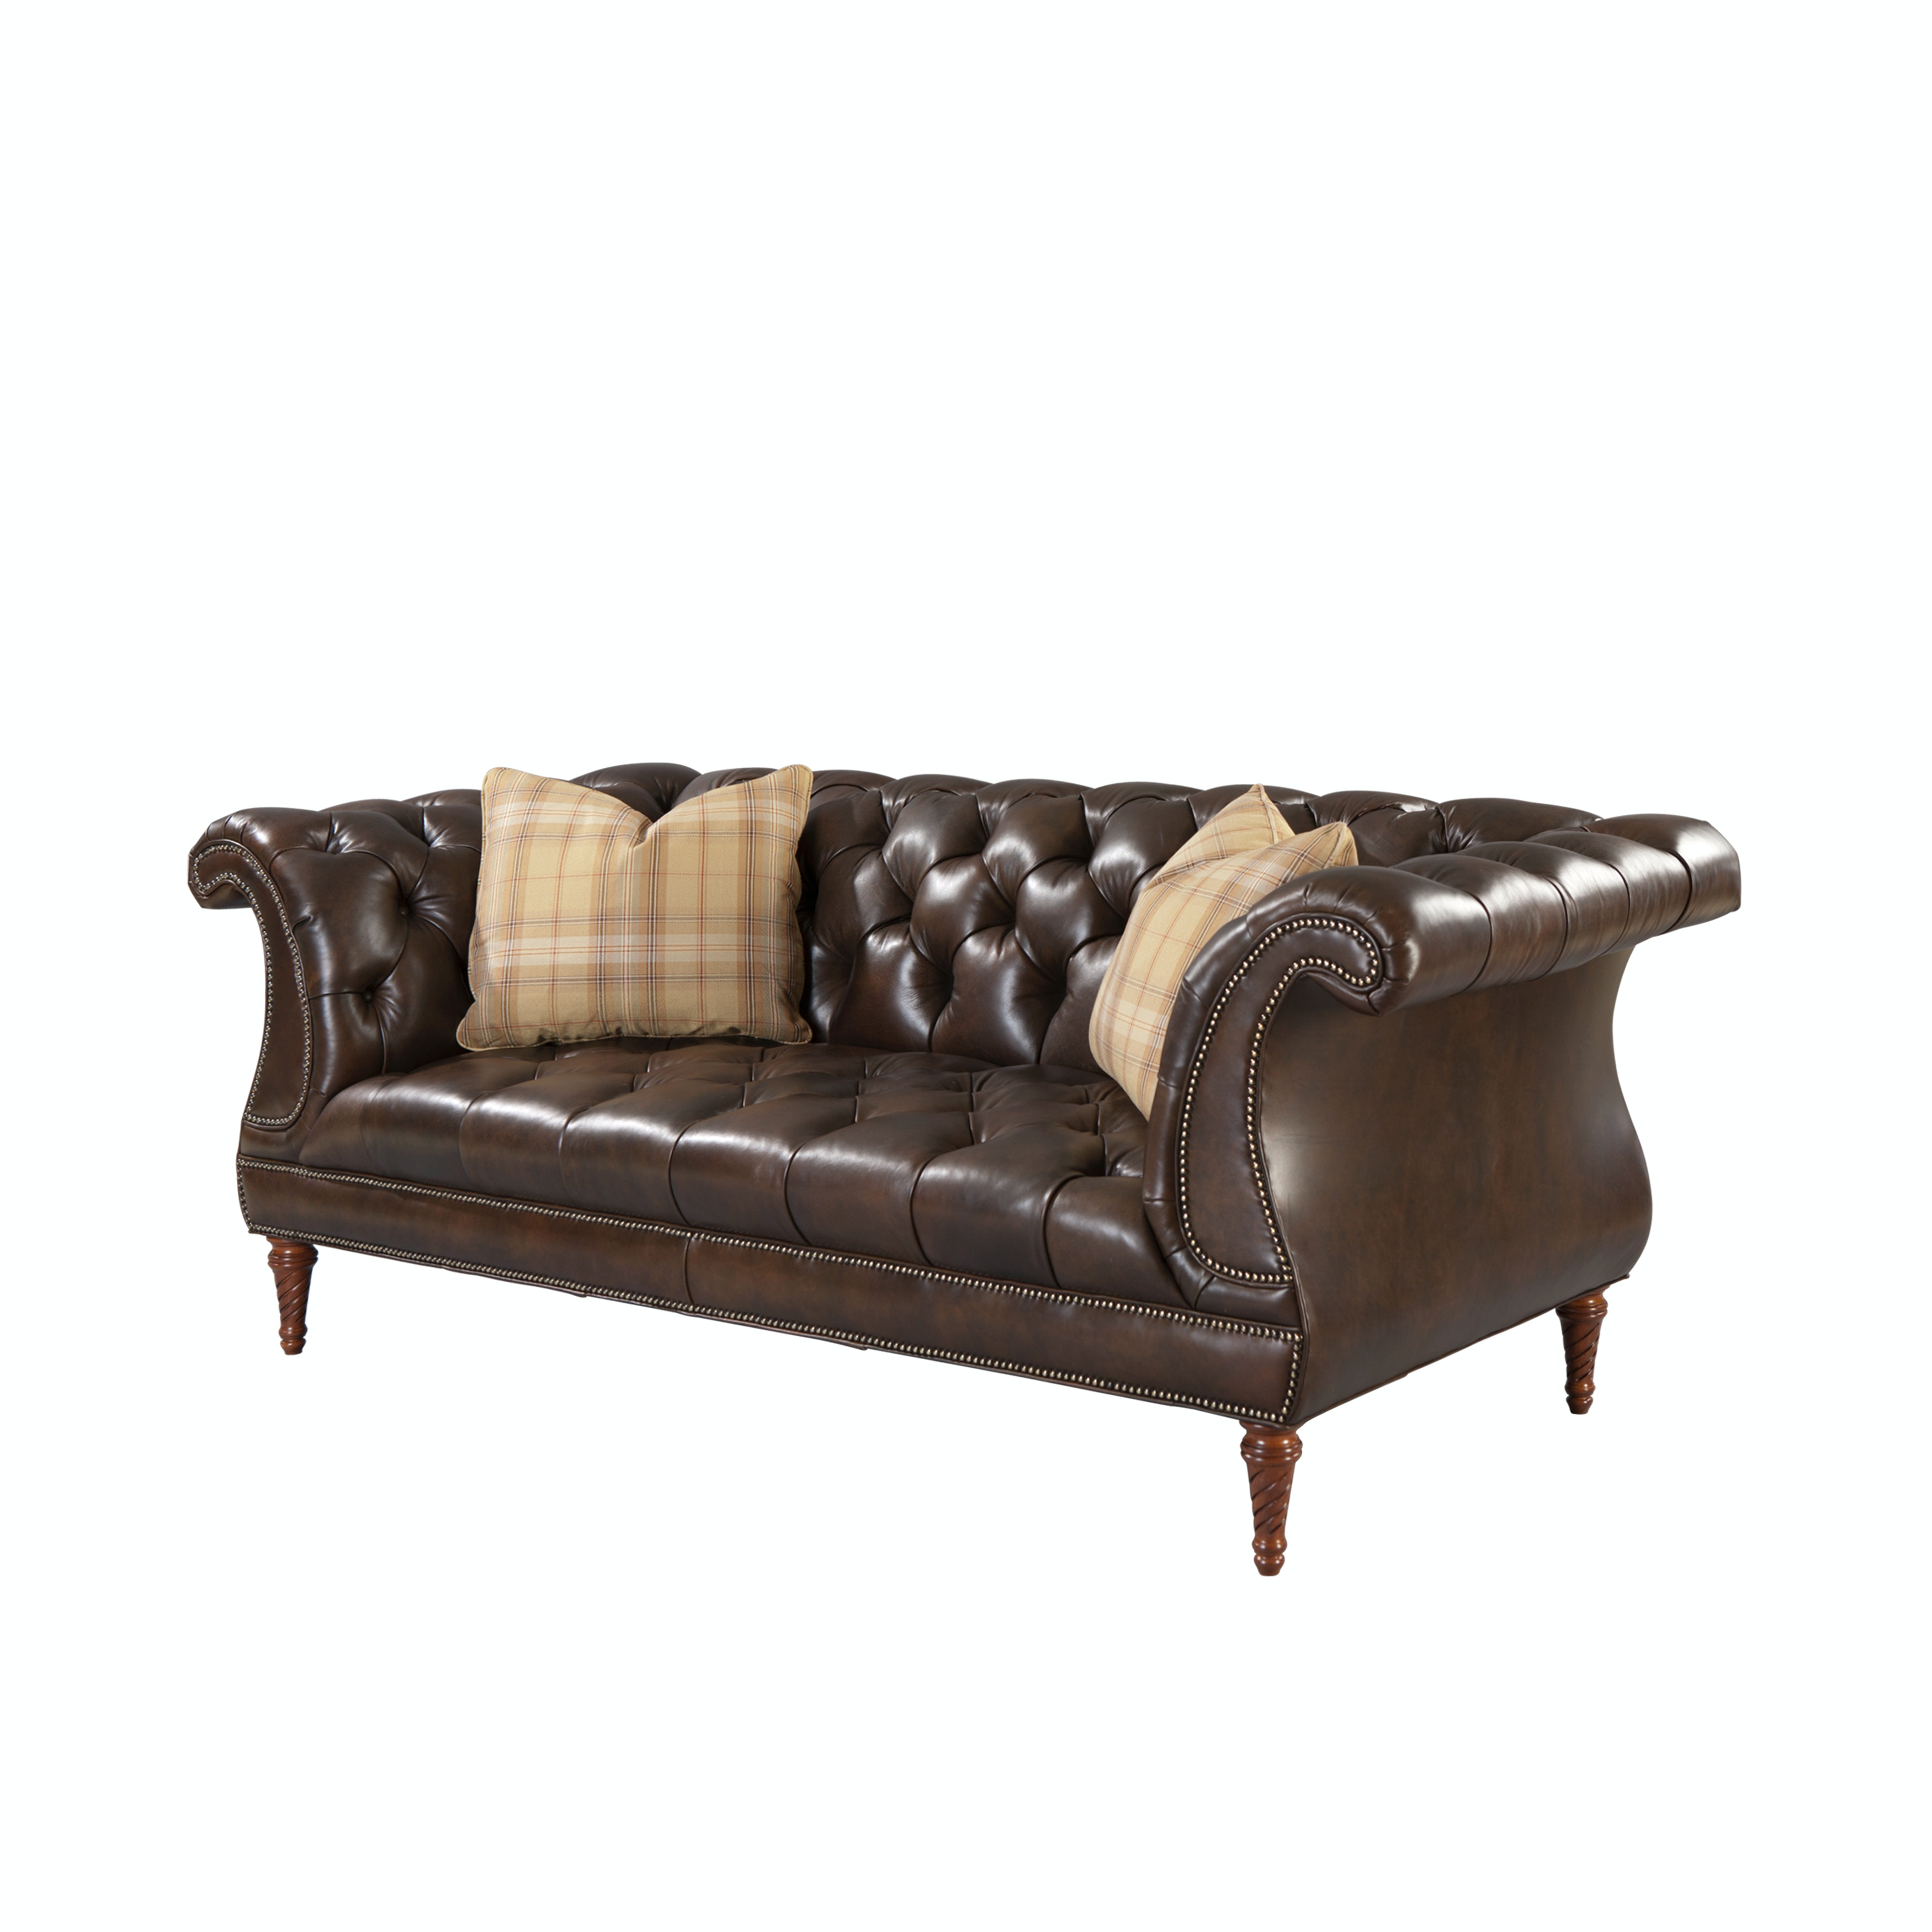 Genial Althorp Furniture The Althorp Library Sofa A461